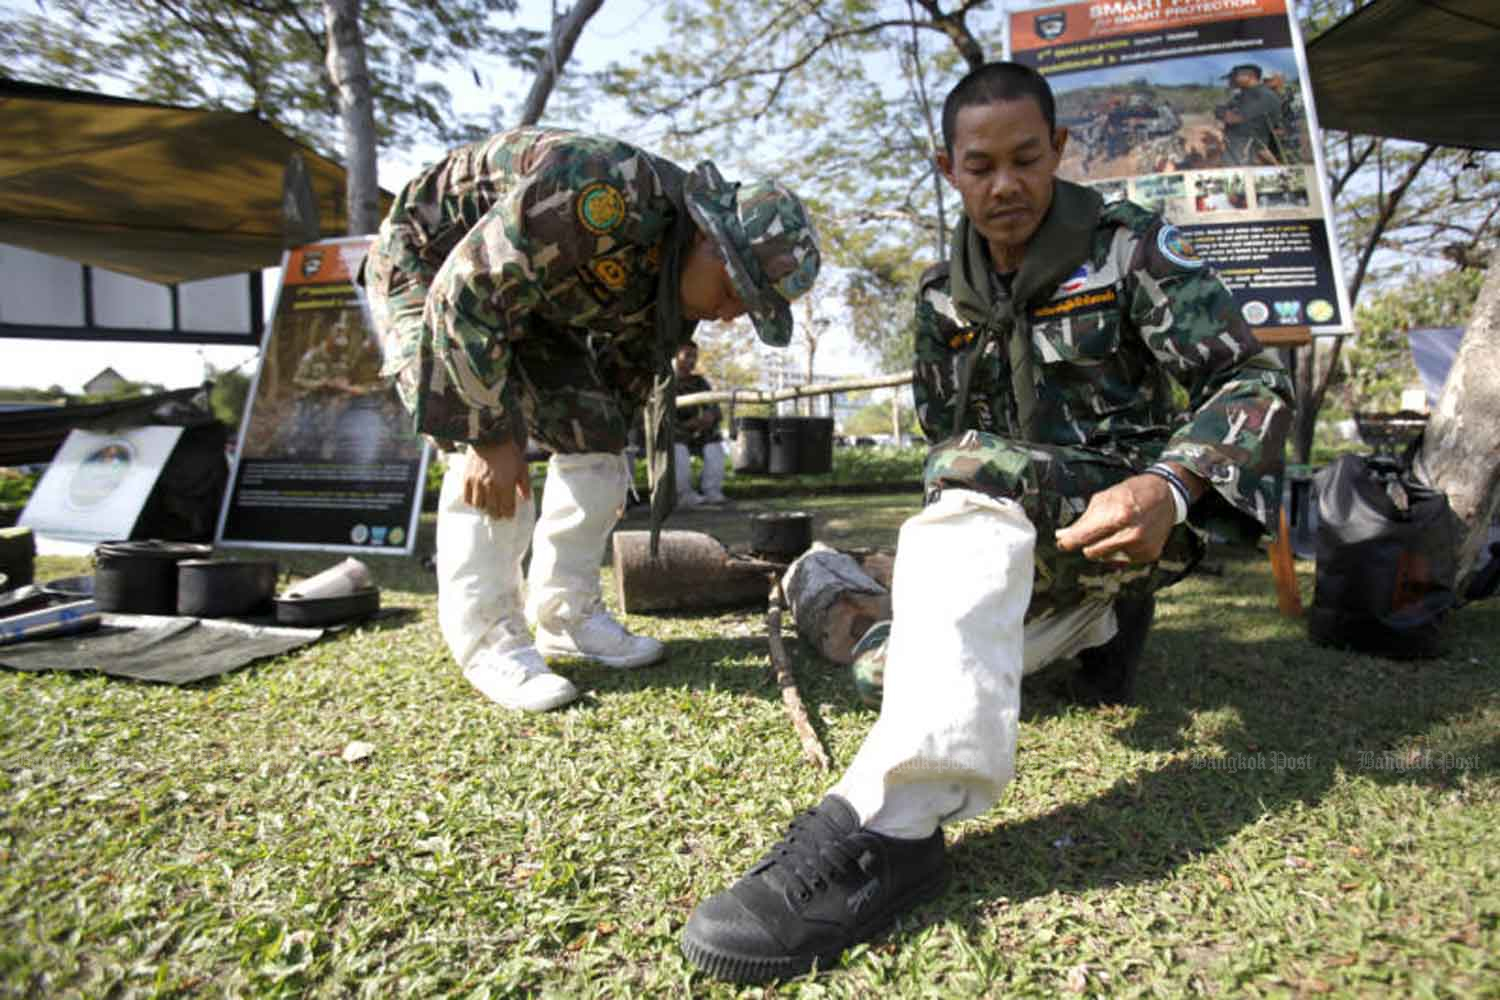 Forestry officials at Huai Kha Khaeng Wildlife Sanctuary try wearing cloth leg guards to protect themselves from leech bites. (File photo by Thanarak Khunton)